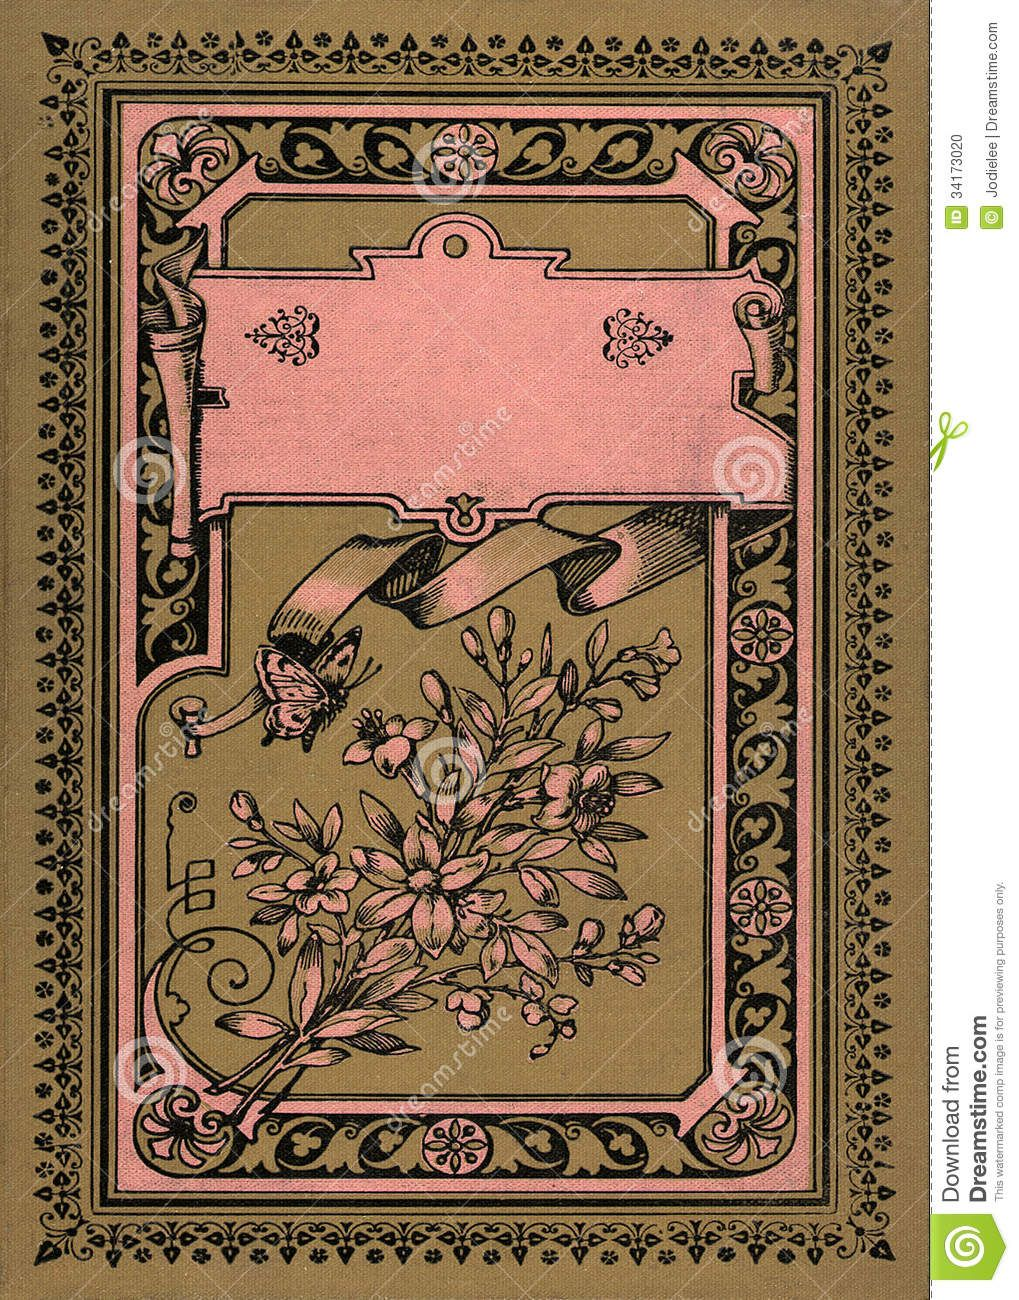 Vintage Book Cover Template : Antique book covers old brown decorative floral